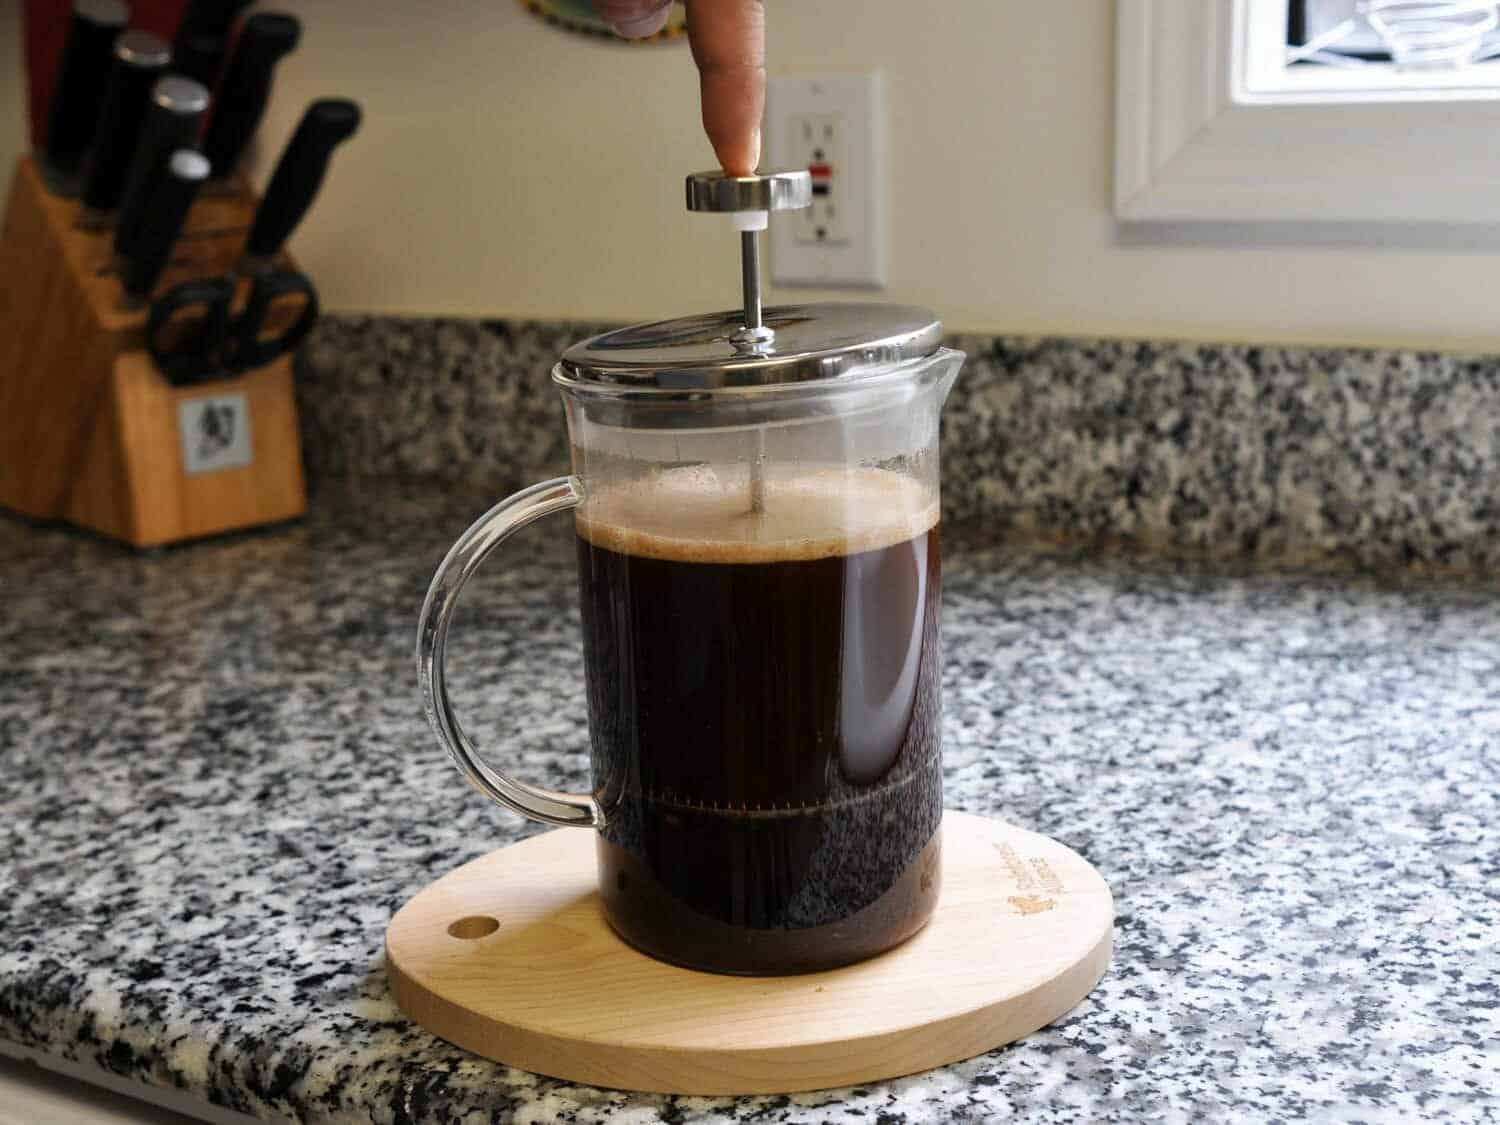 Bereiding French press koffie